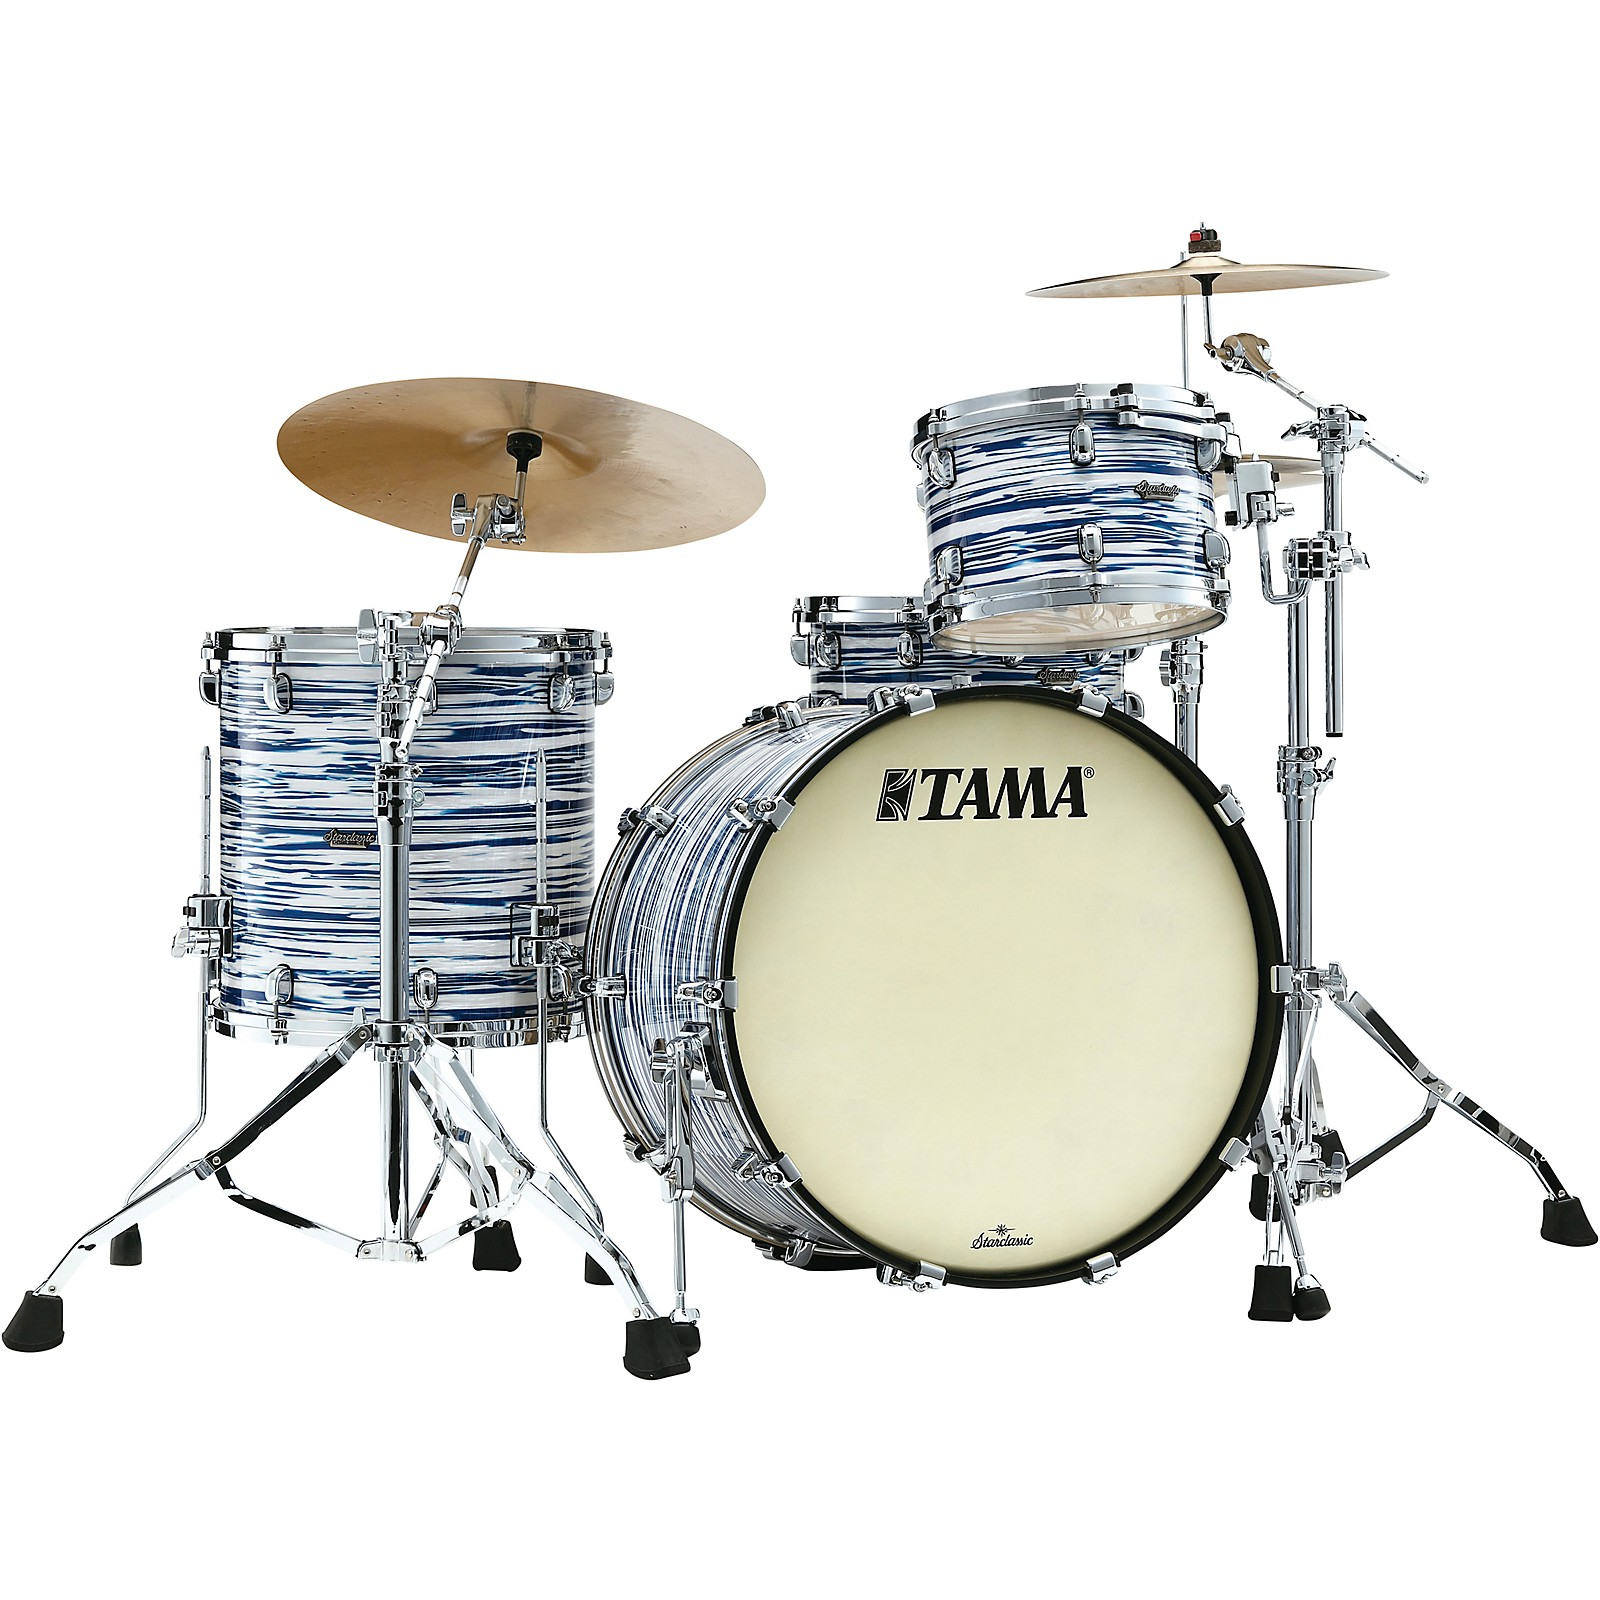 TAMA Starclassic Maple 3-piece Shell Pack with 22 in. Bass Drum